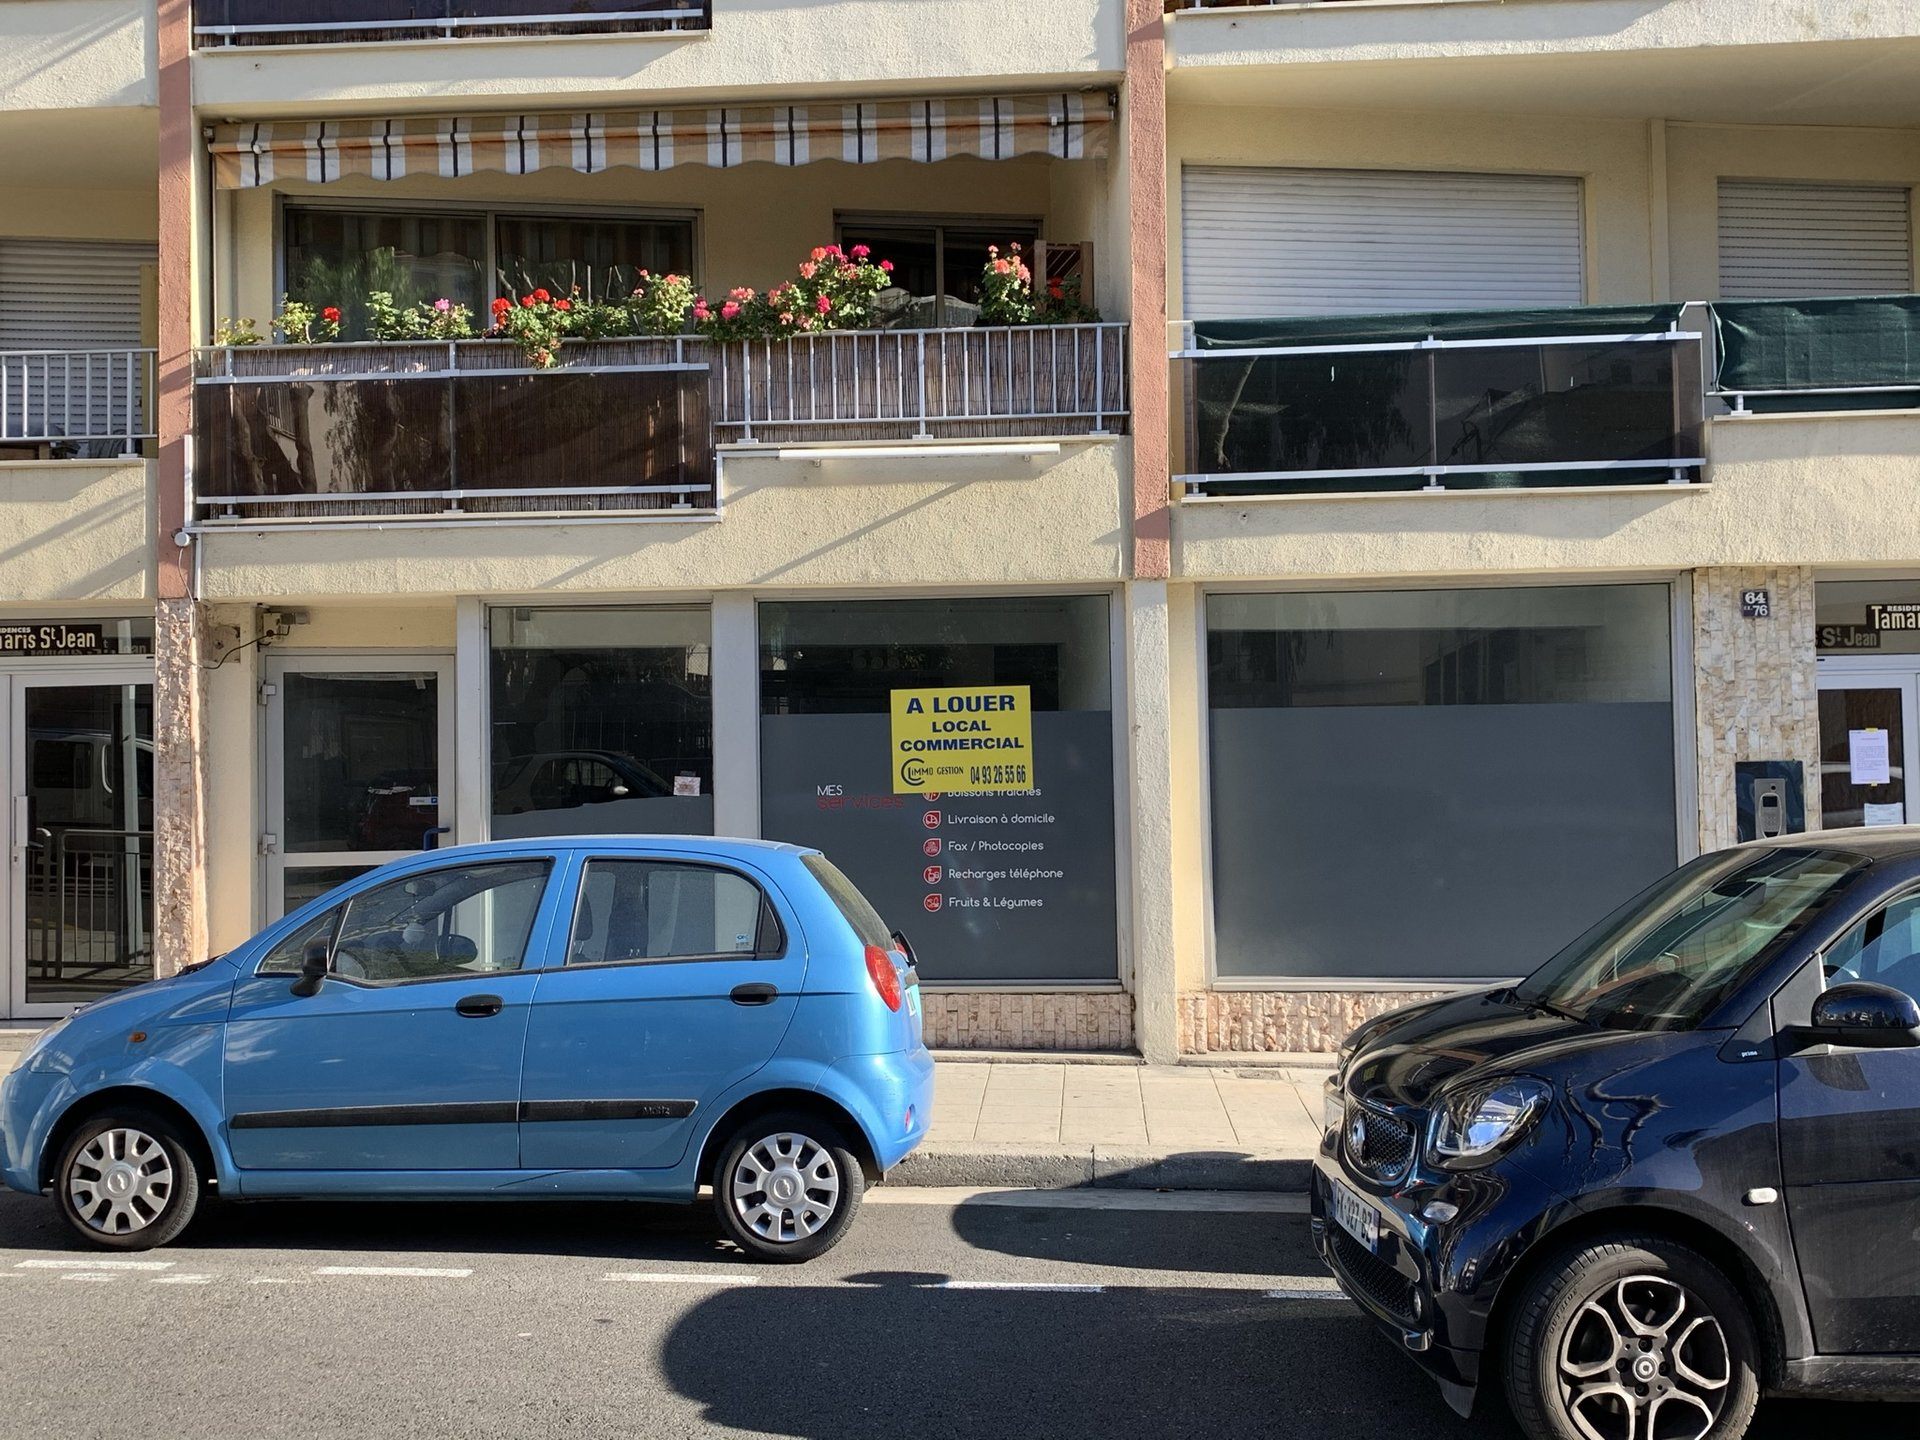 Affitto Locale commerciale - Nizza (Nice) Madeleine